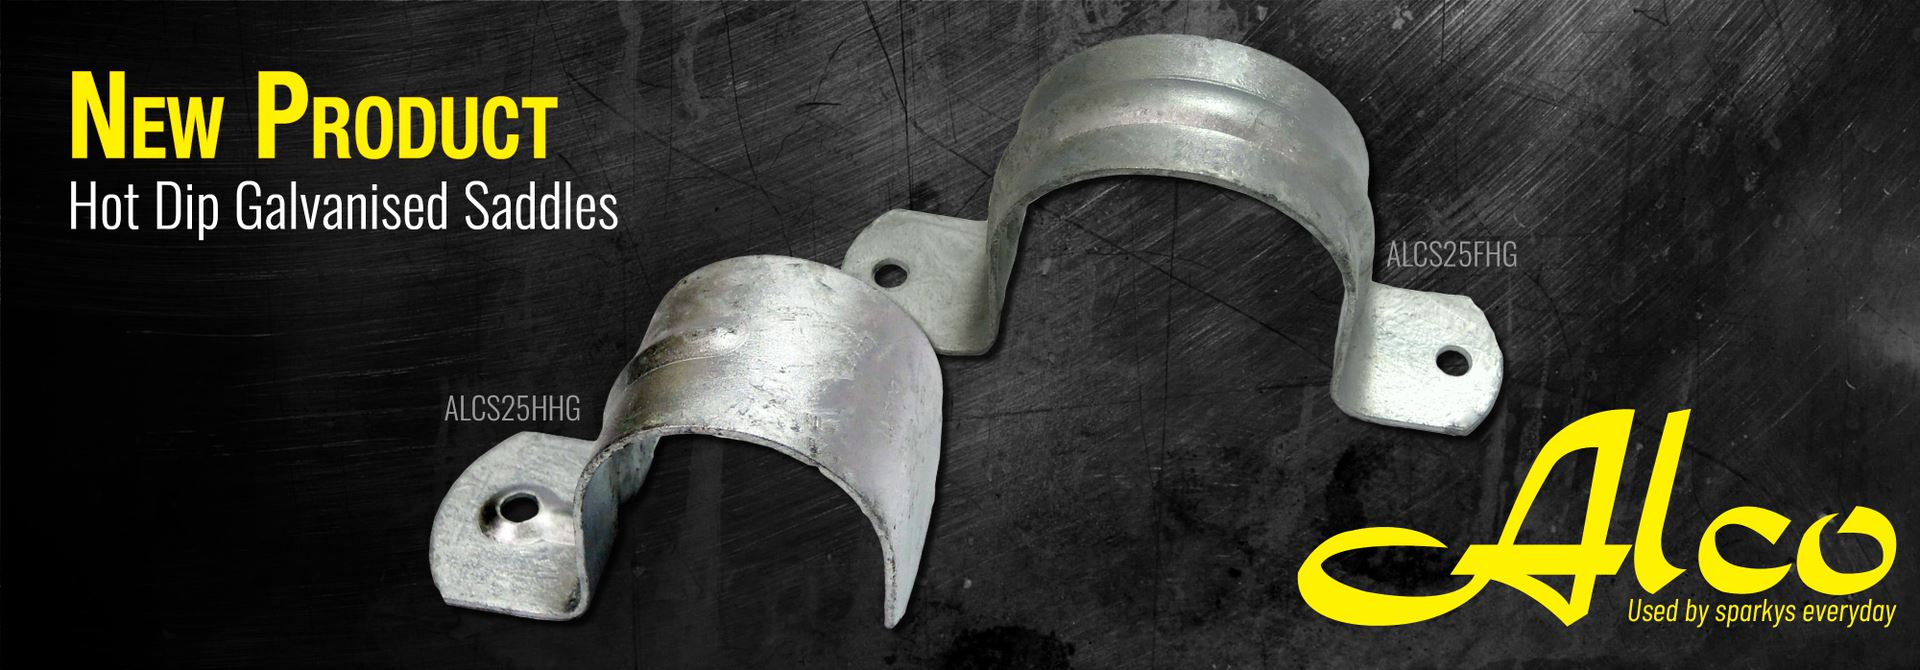 New Product - Hot Dip Galvanised Saddles